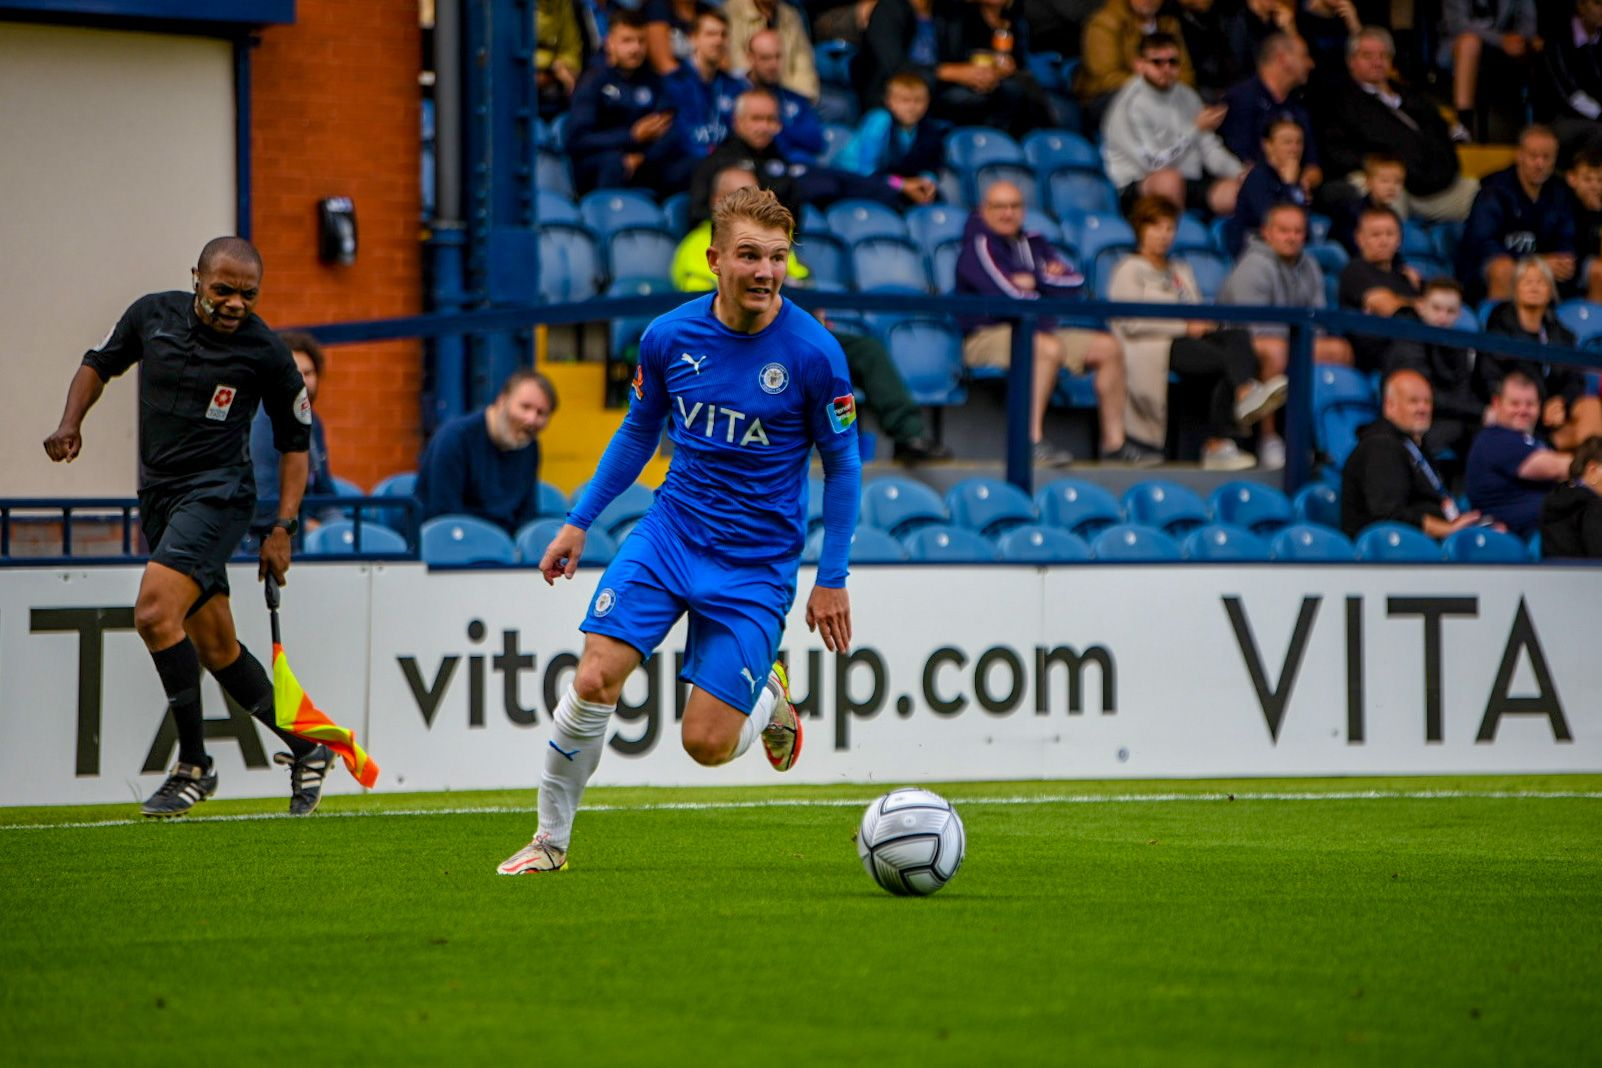 Stockport County player